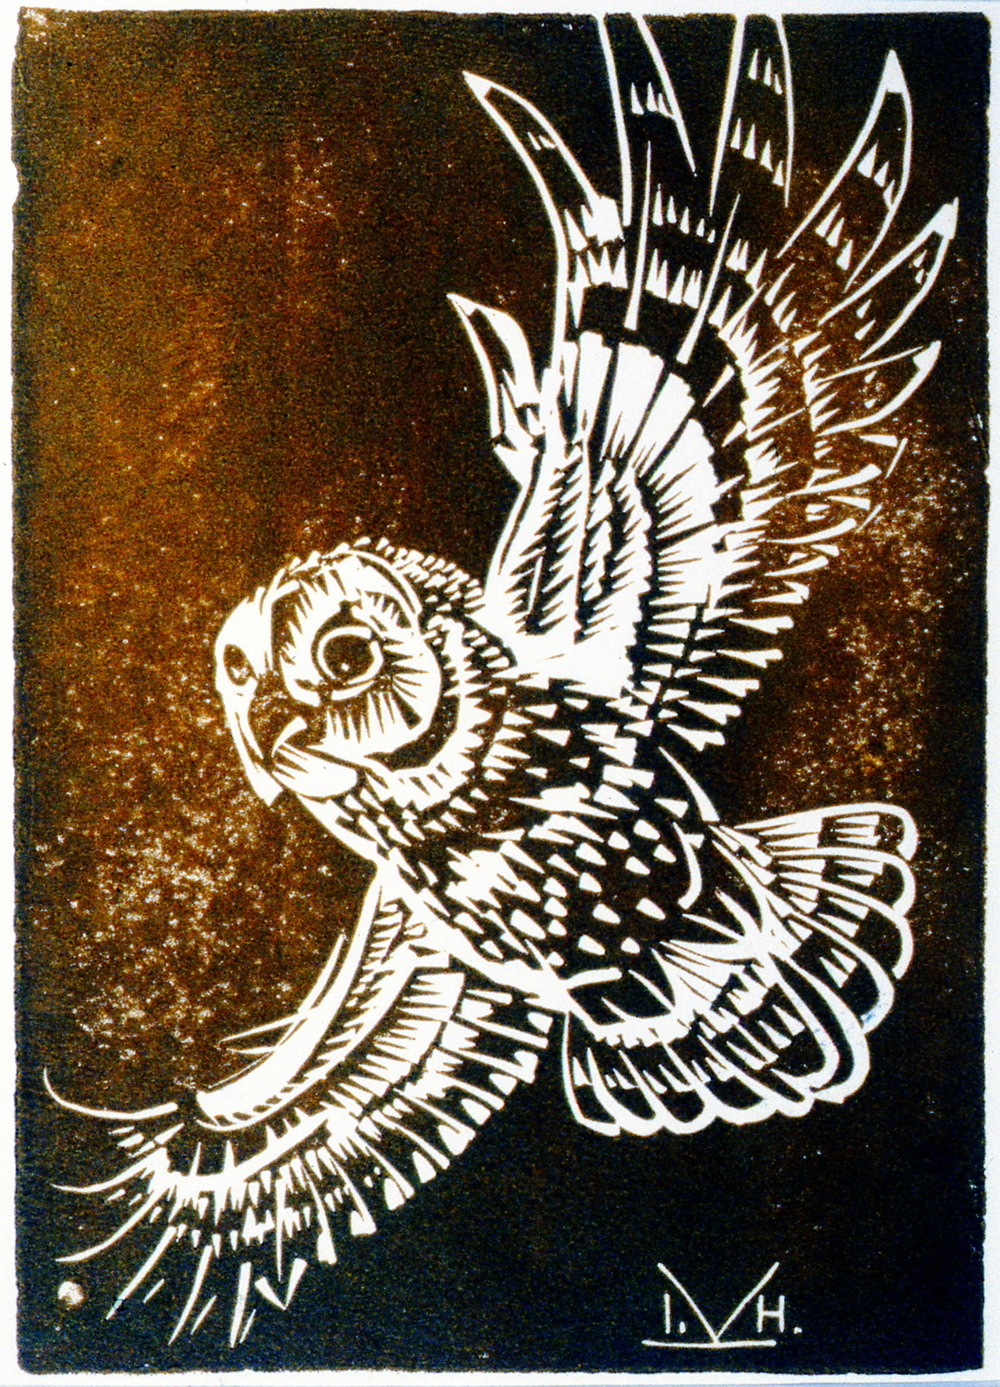 "Owl , Illingworth Kerr, lino on paper, 8 7/8"" x 6 1/4"", 1993.02.03"